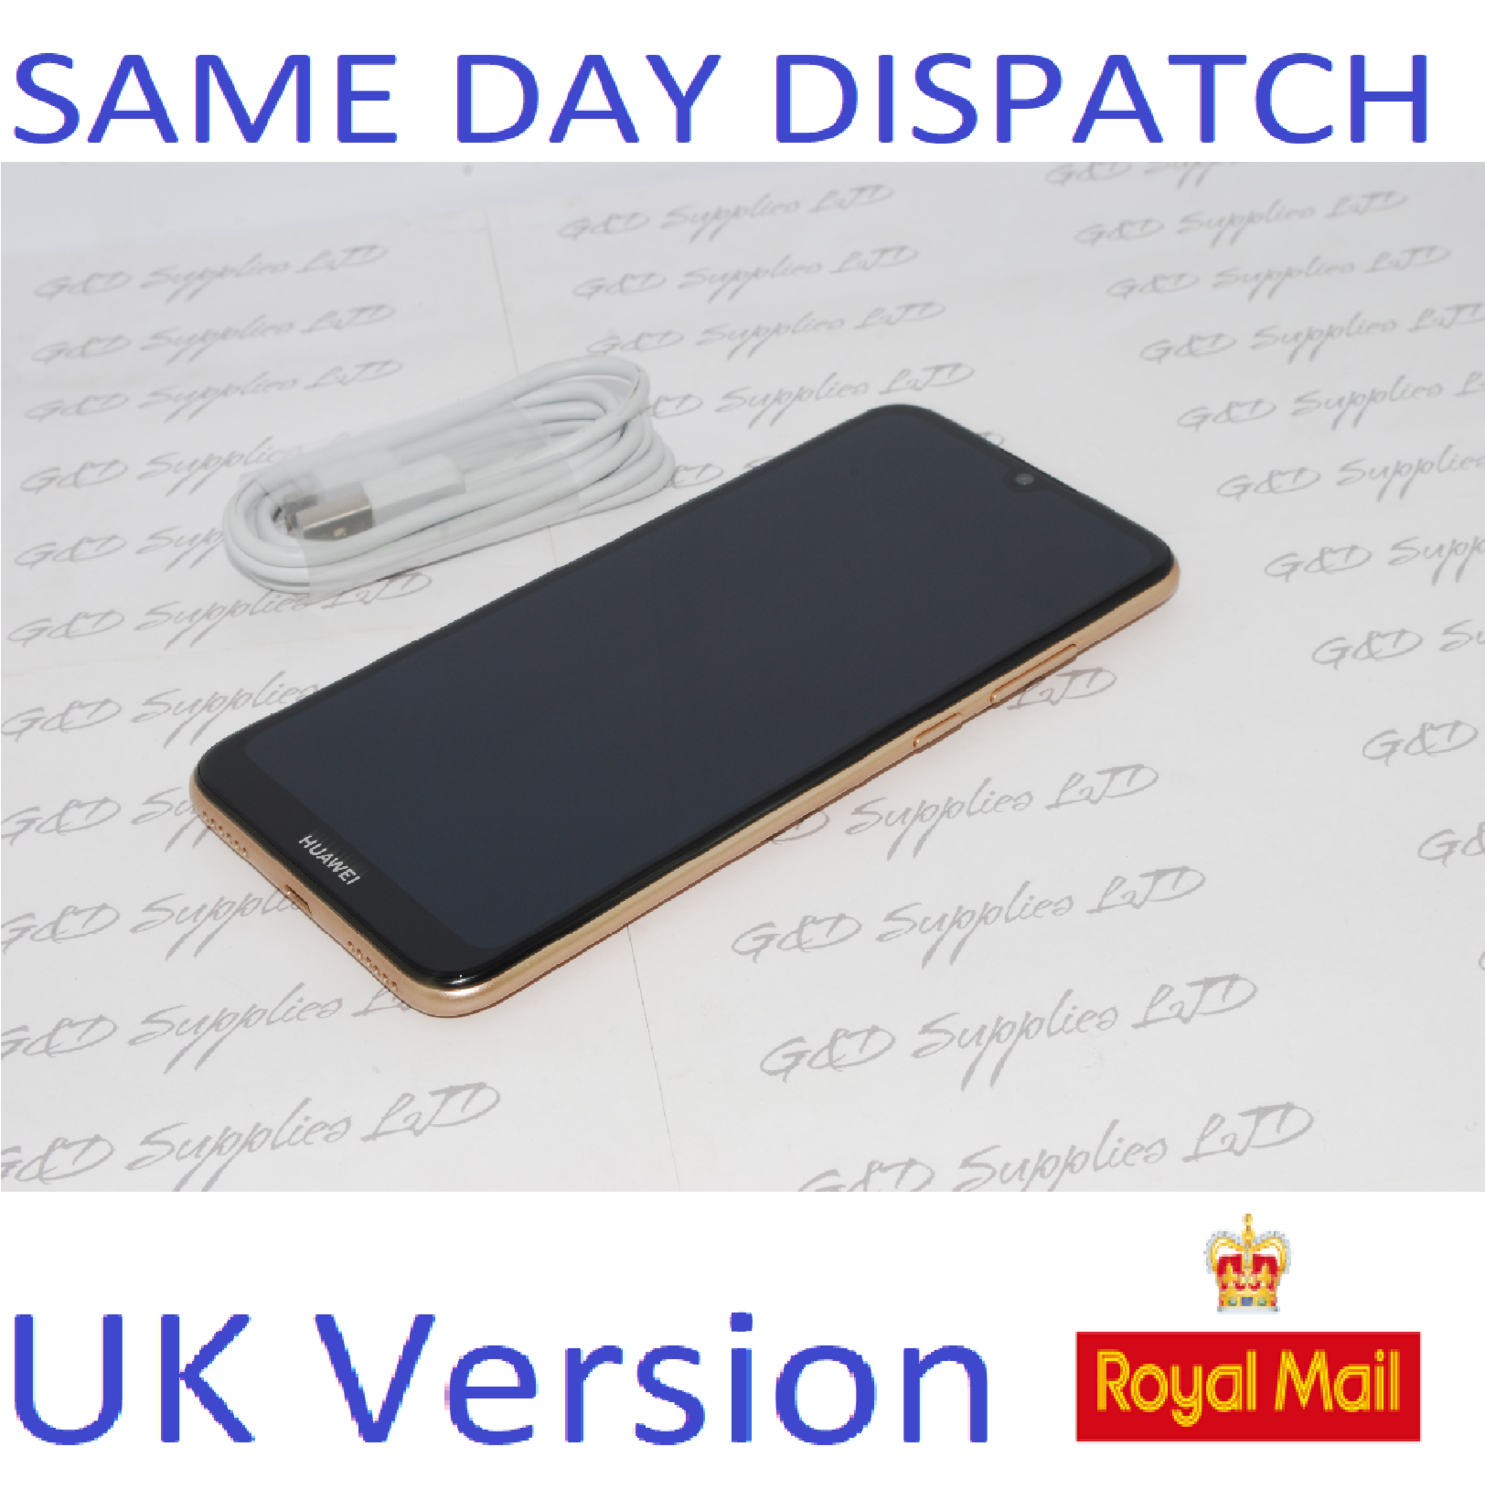 Huawei Y6 32GB 2019 Mobile Phone Sapphire Brown unlocked UK version NO BOX